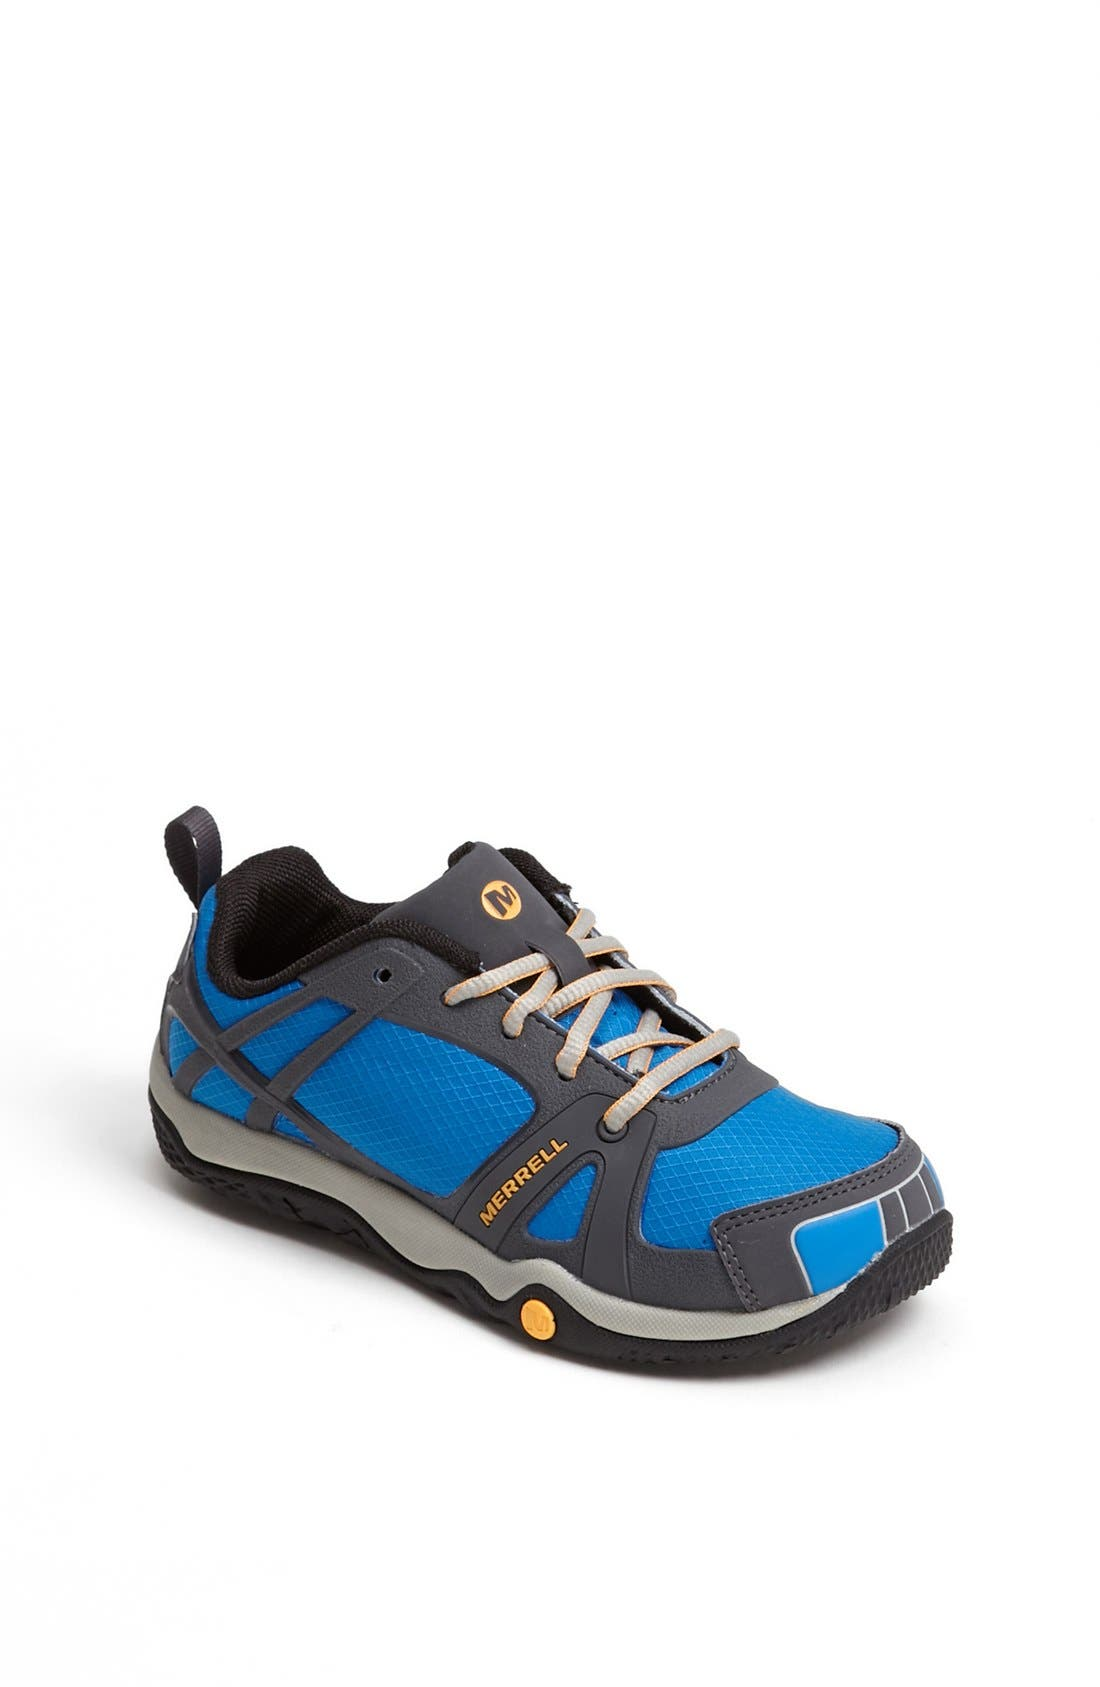 Main Image - Merrell 'Proterra Sport' Sneaker (Toddler, Little Kid & Big Kid)